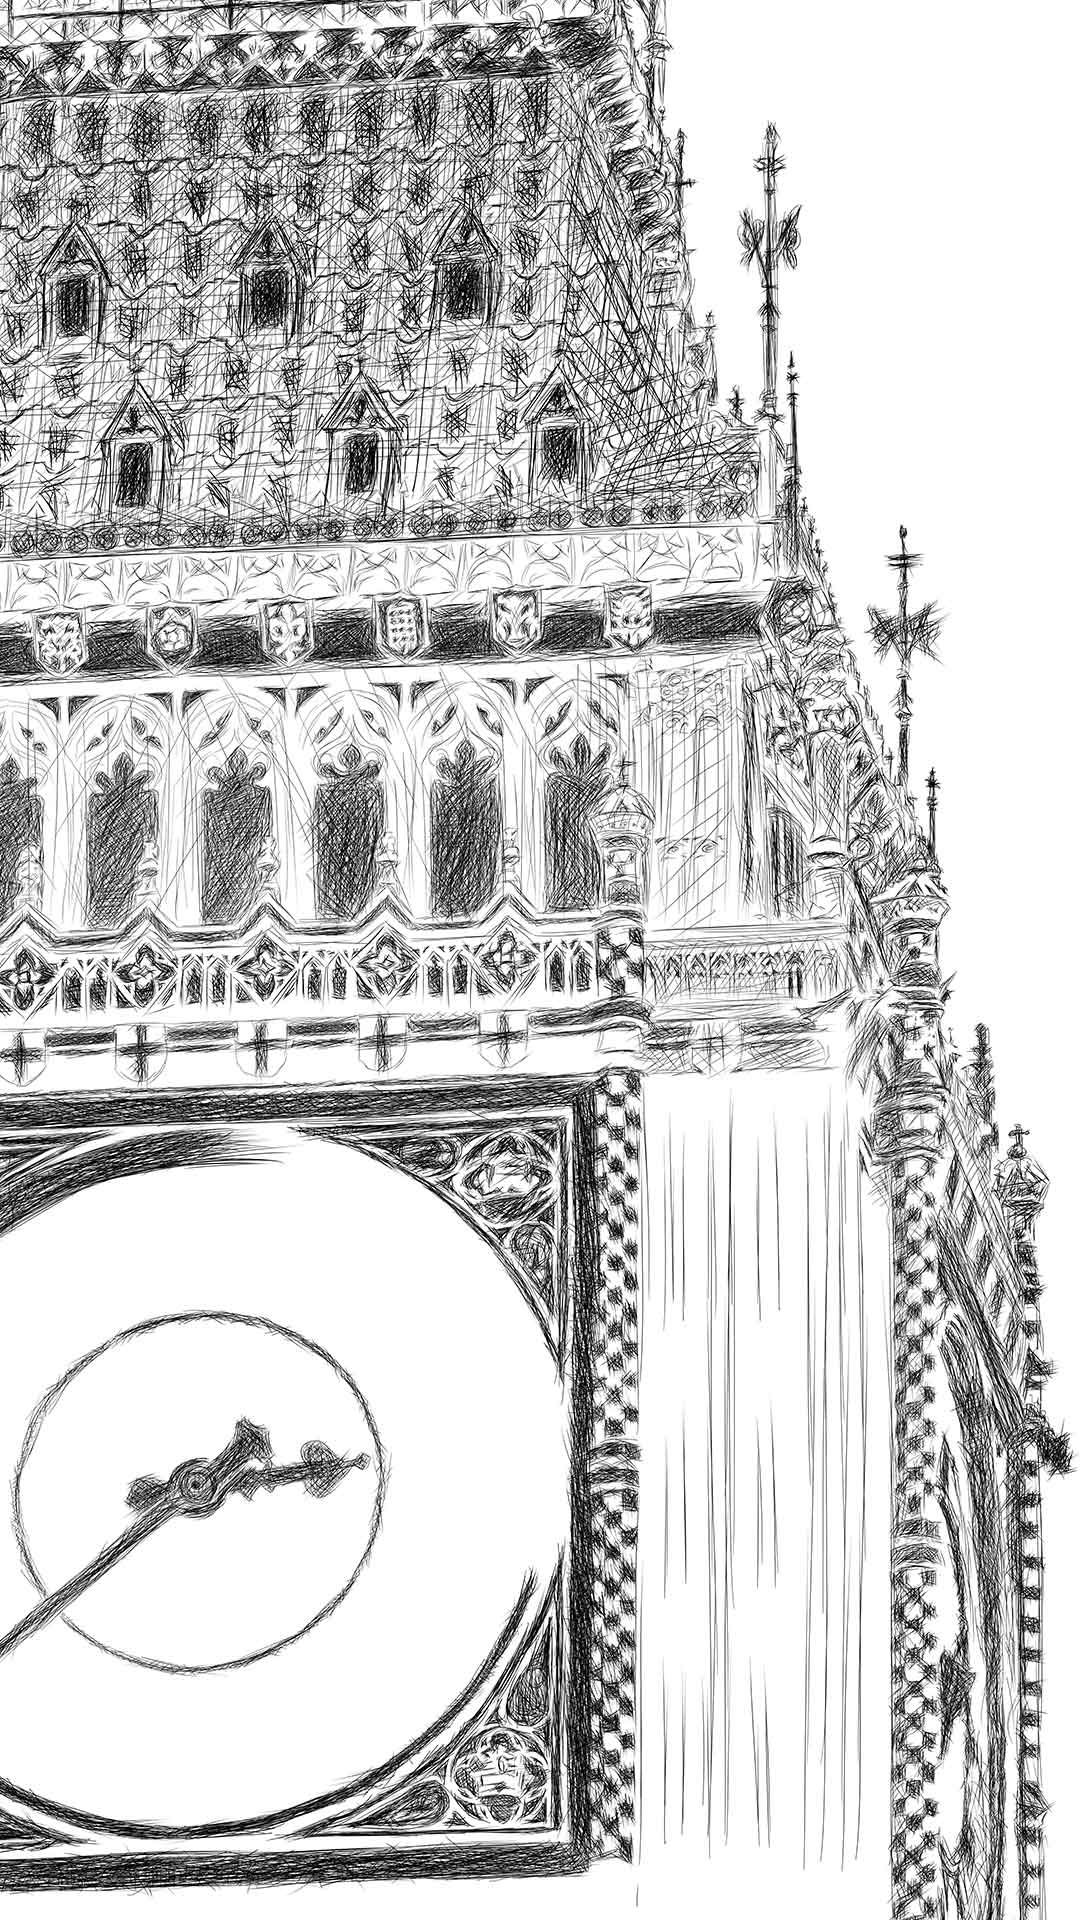 Big Ben pencil line illustration יור בעיפרון קווי ביג בן לונדון process2